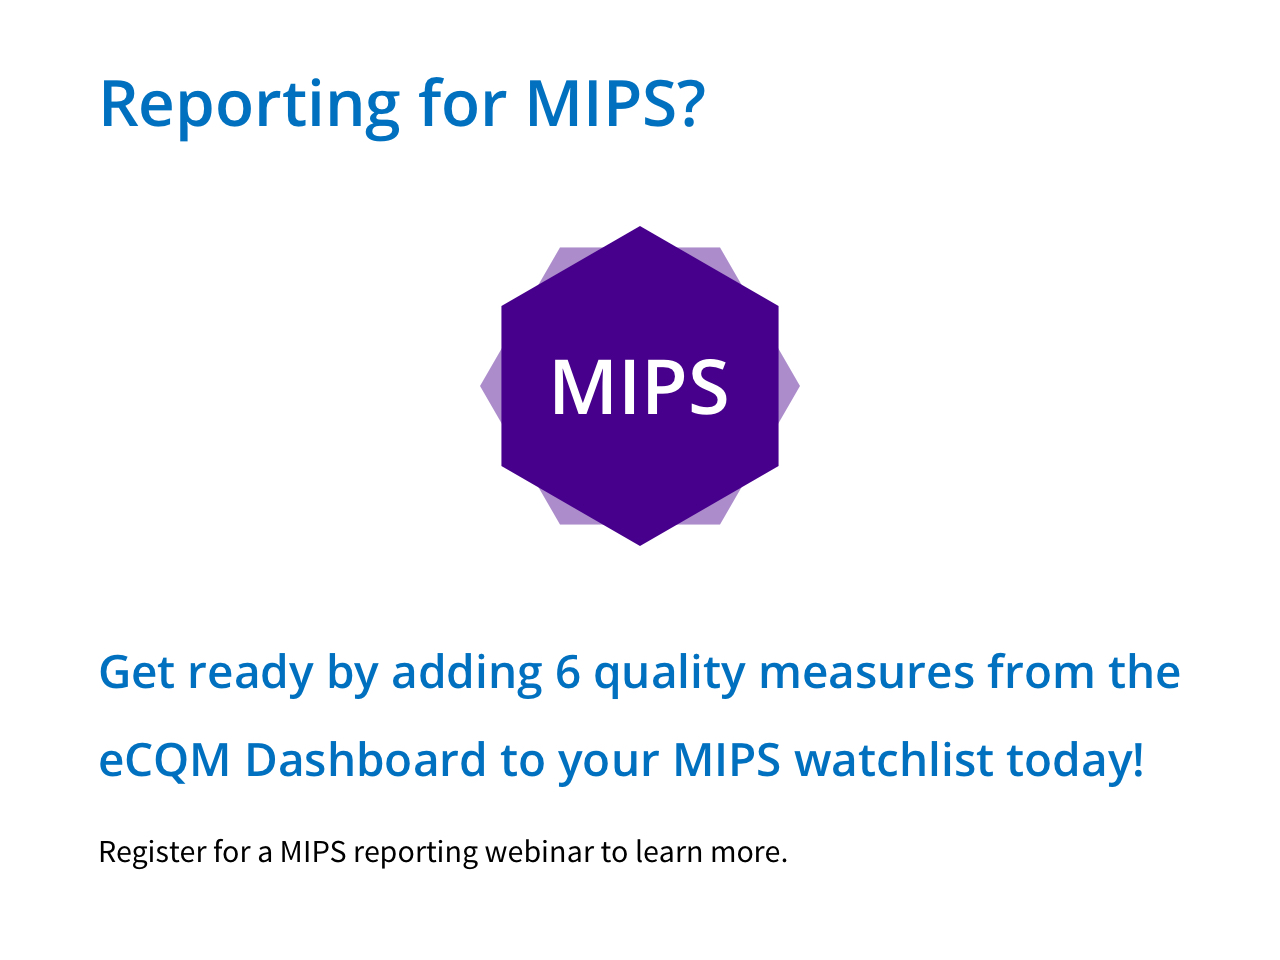 Reporting for MIPS? Get ready by adding 6 quality measure from the eCQM Dashboard to your MIPS watchlist today! Register for a MIPS reporting webinar to learn more